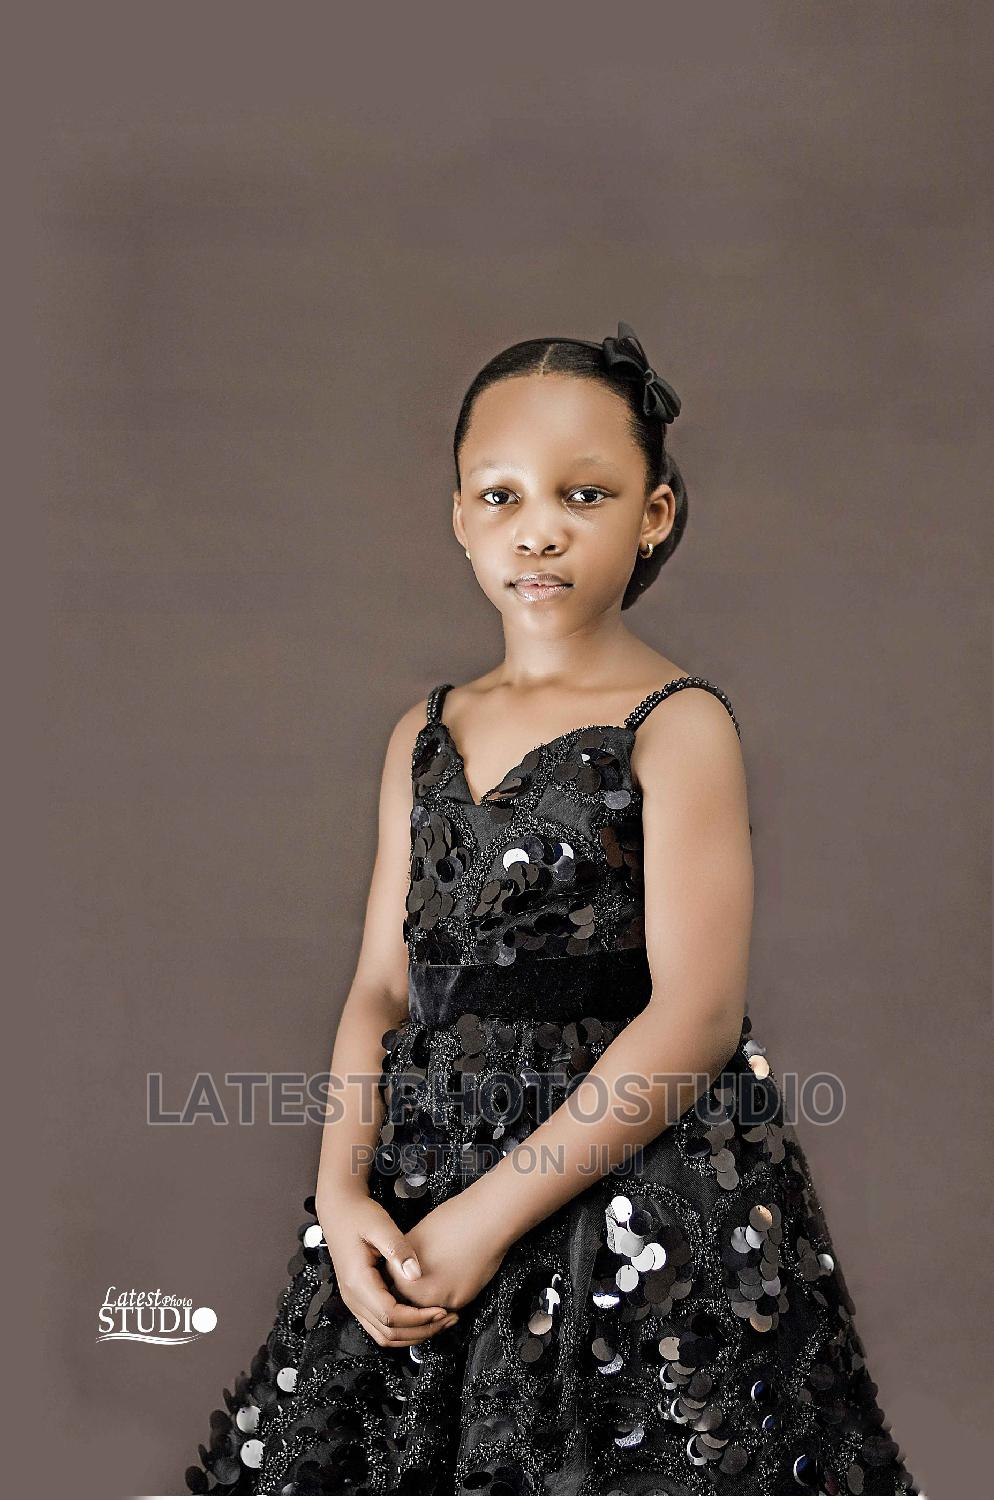 Beautiful Image   Photography & Video Services for sale in Ikeja, Lagos State, Nigeria